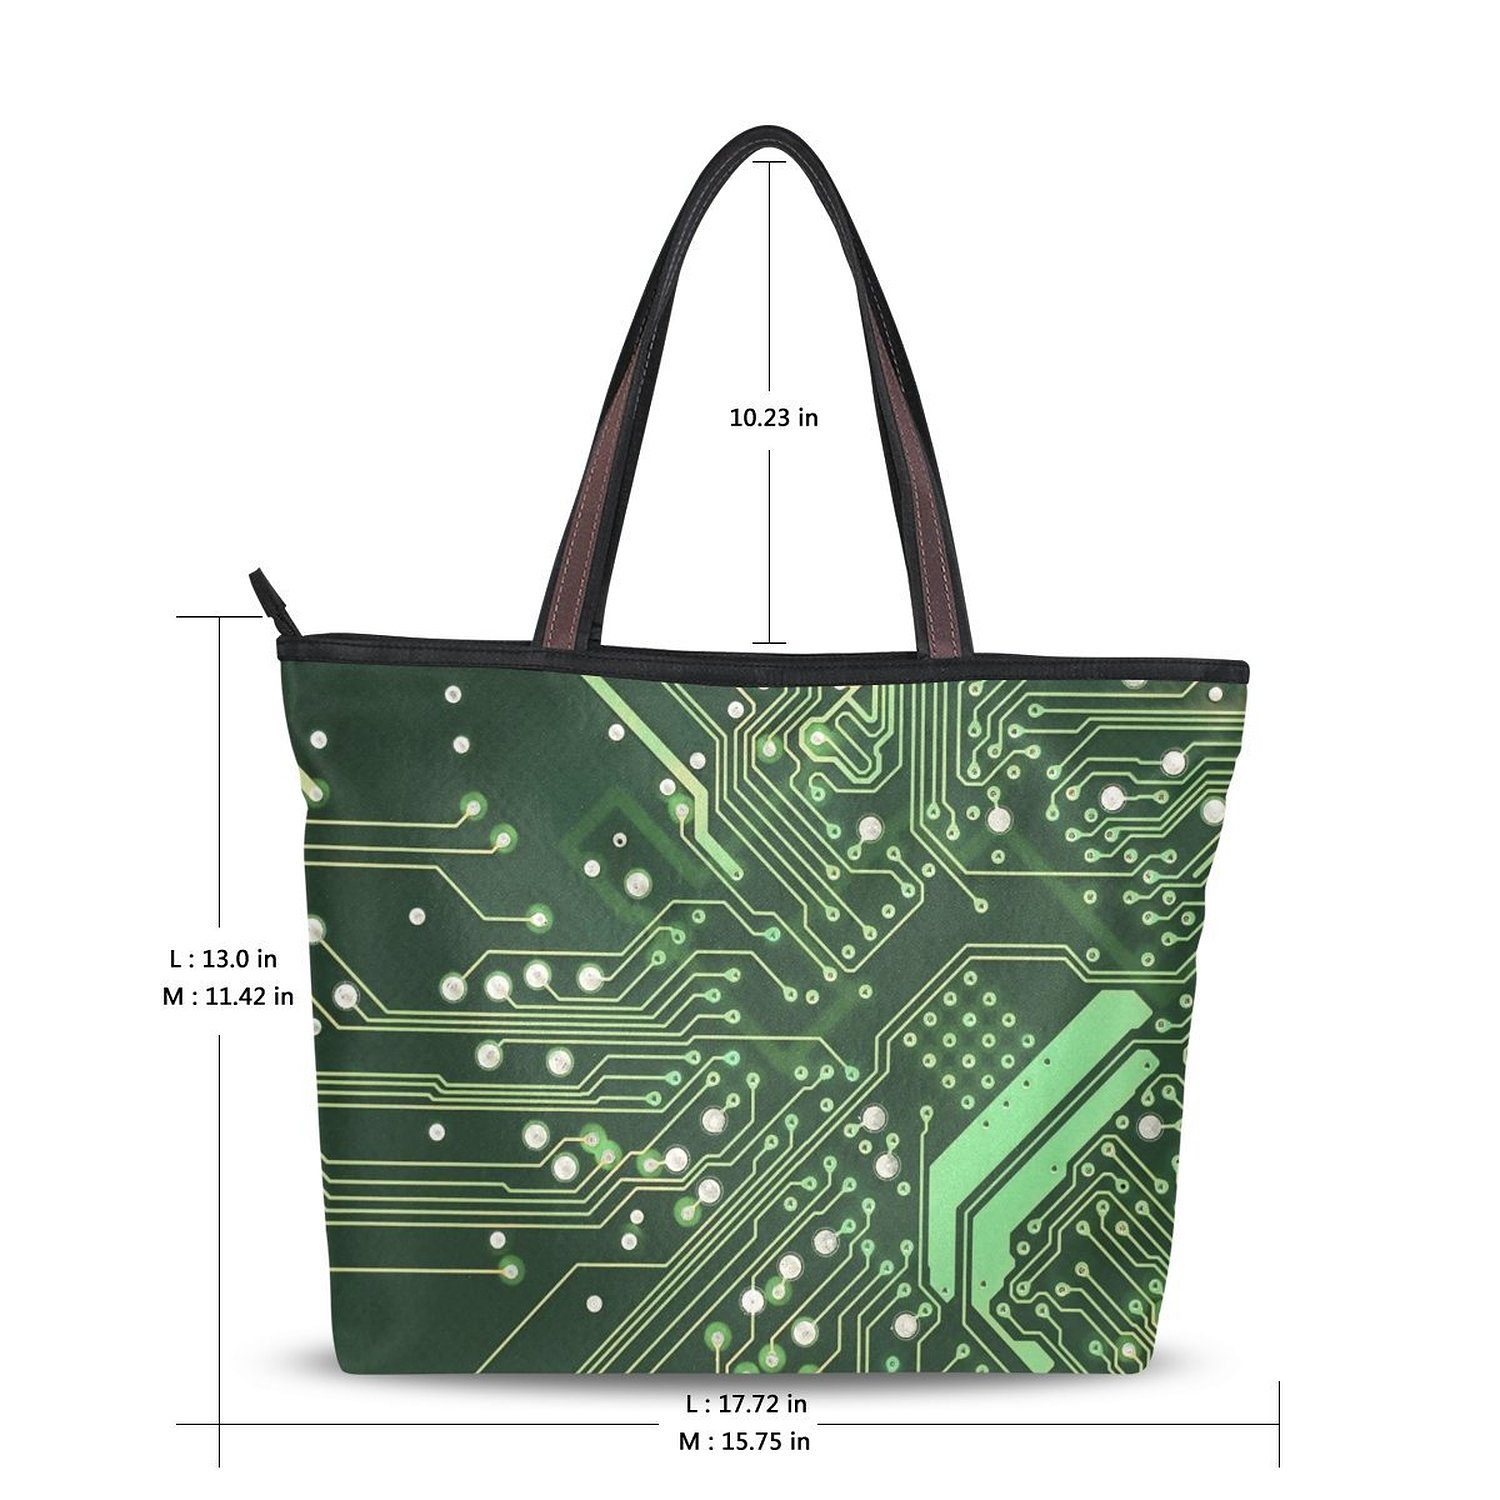 Cheap Fan Circuit Diagram Find Deals On Line At 110 Wiring Switch Reostat Get Quotations Ingbags Fashion Large Tote Shoulder Bag Pattern Women Ladies Handbag